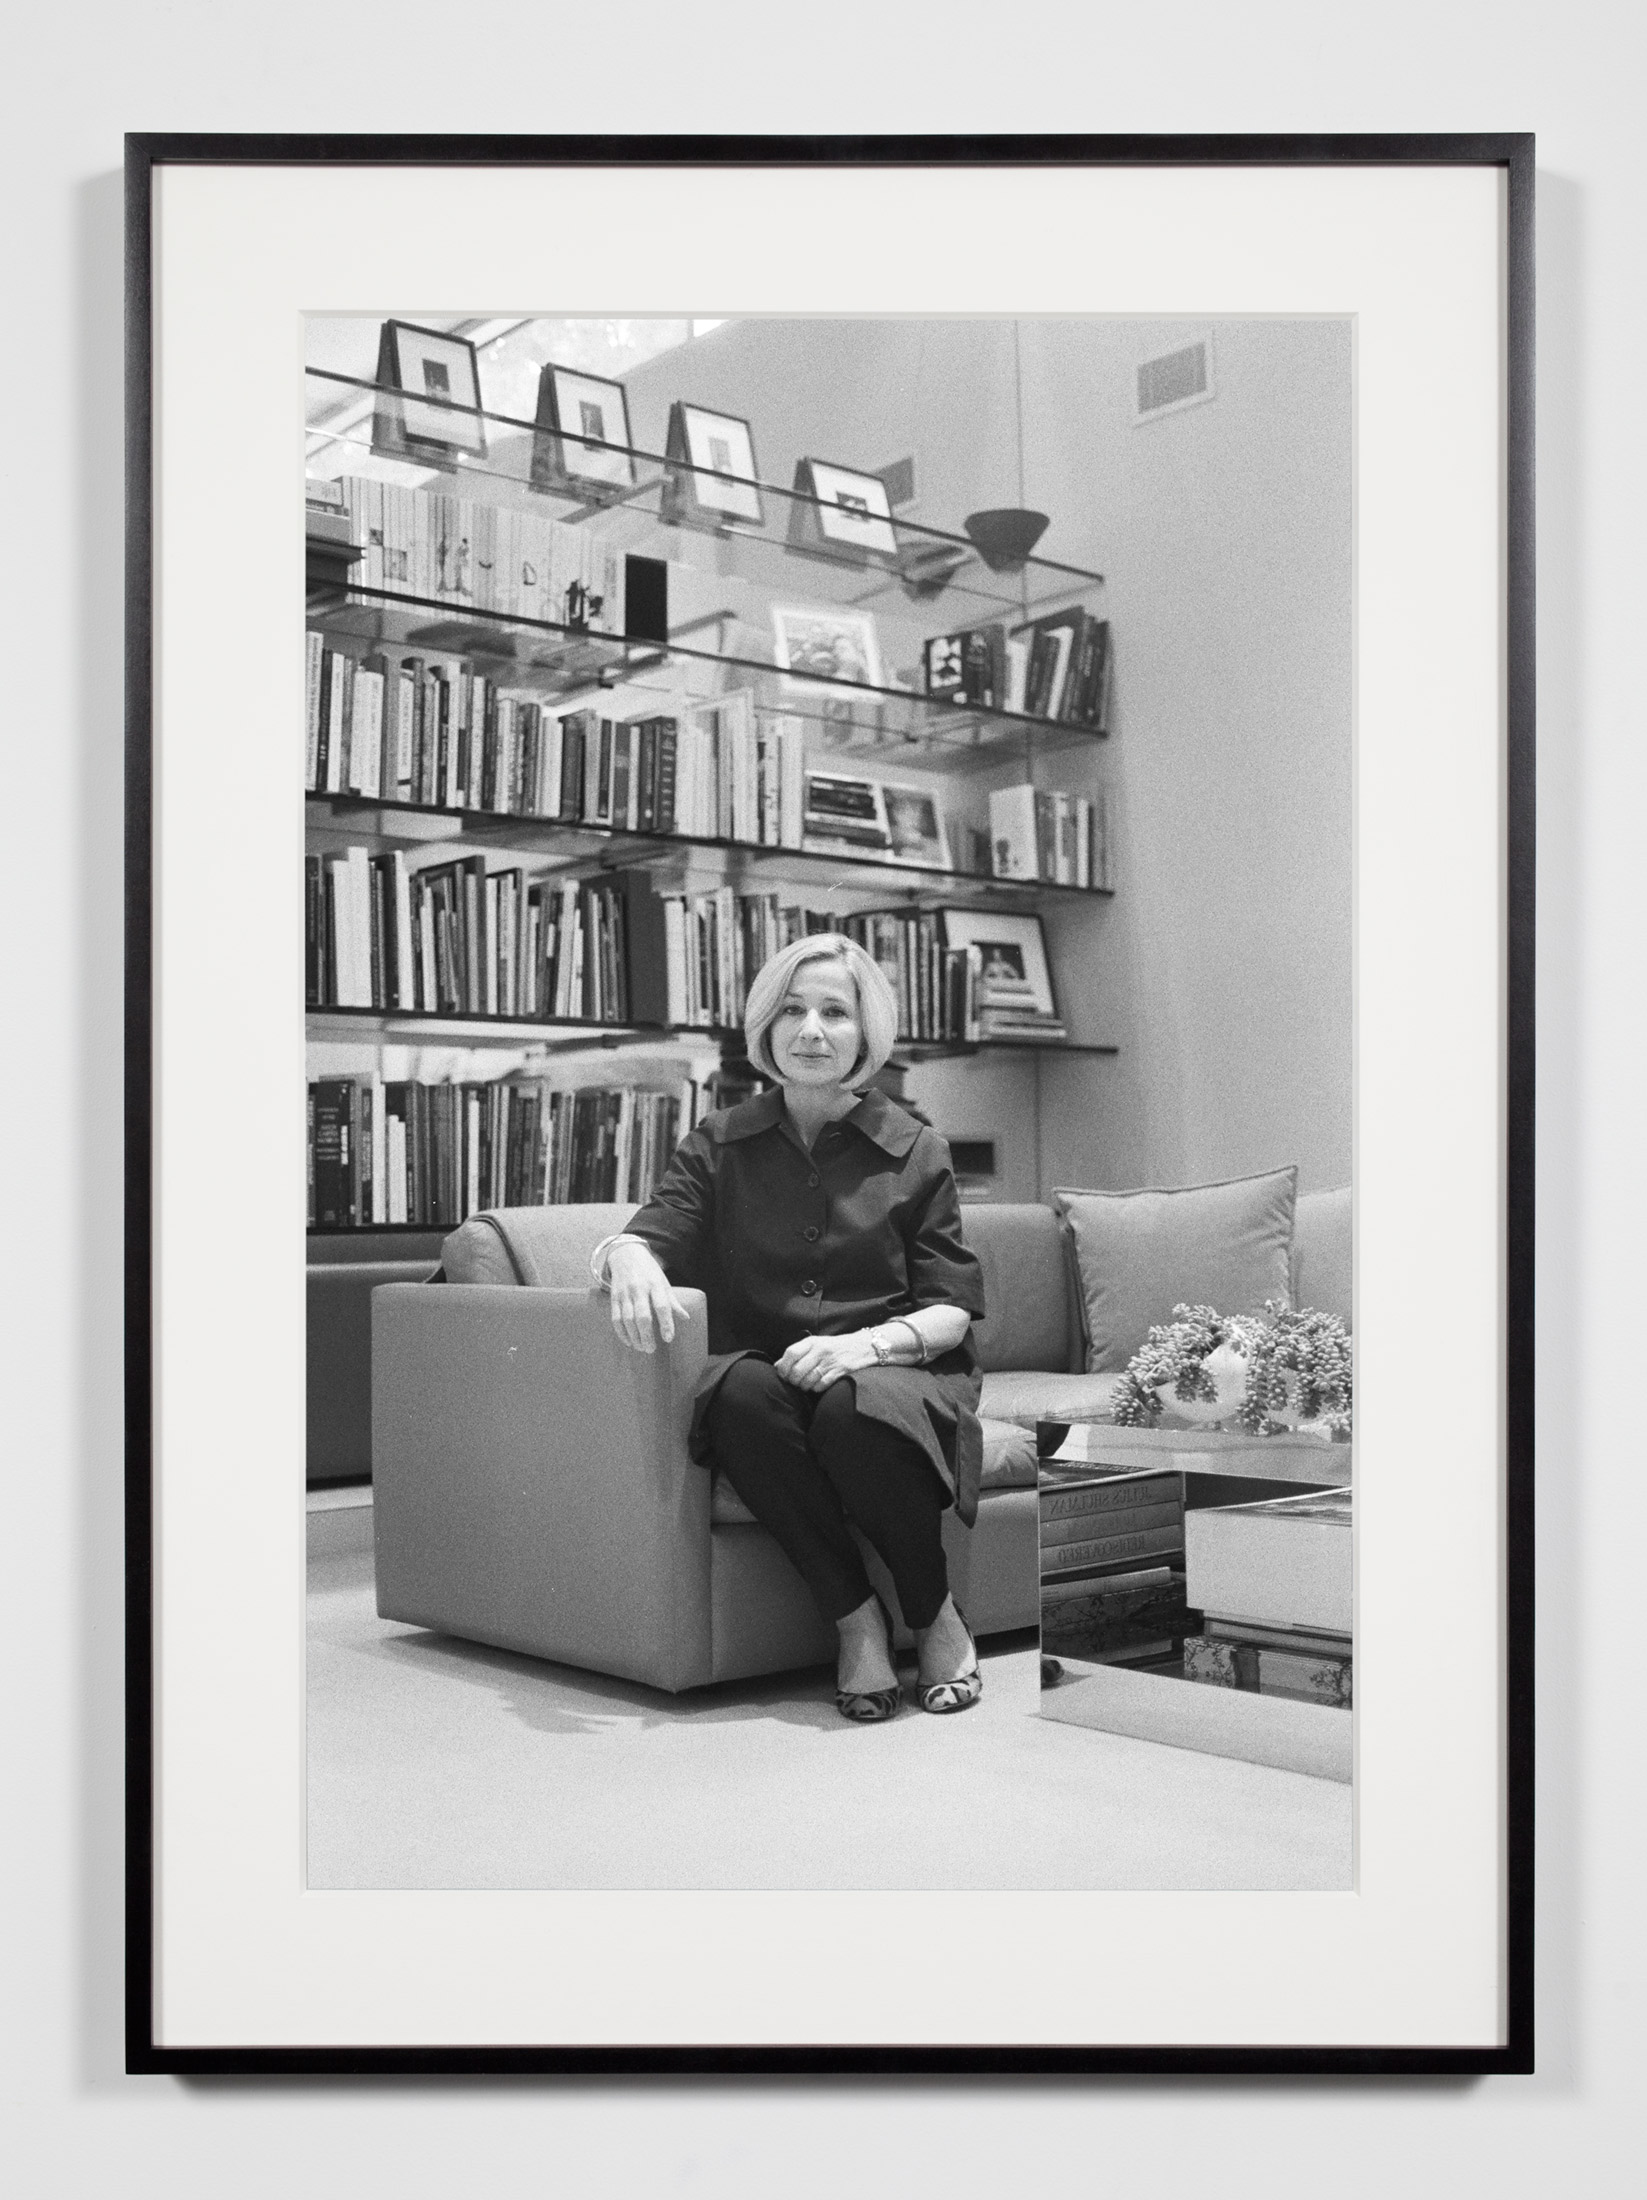 Art Consultant/Collector, Dallas, Texas, November 7, 2009    2011   Epson Ultrachrome K3 archival ink jet print on Hahnemühle Photo Rag paper  36 3/8 x 26 3/8 inches   Industrial Portraits, 2008–